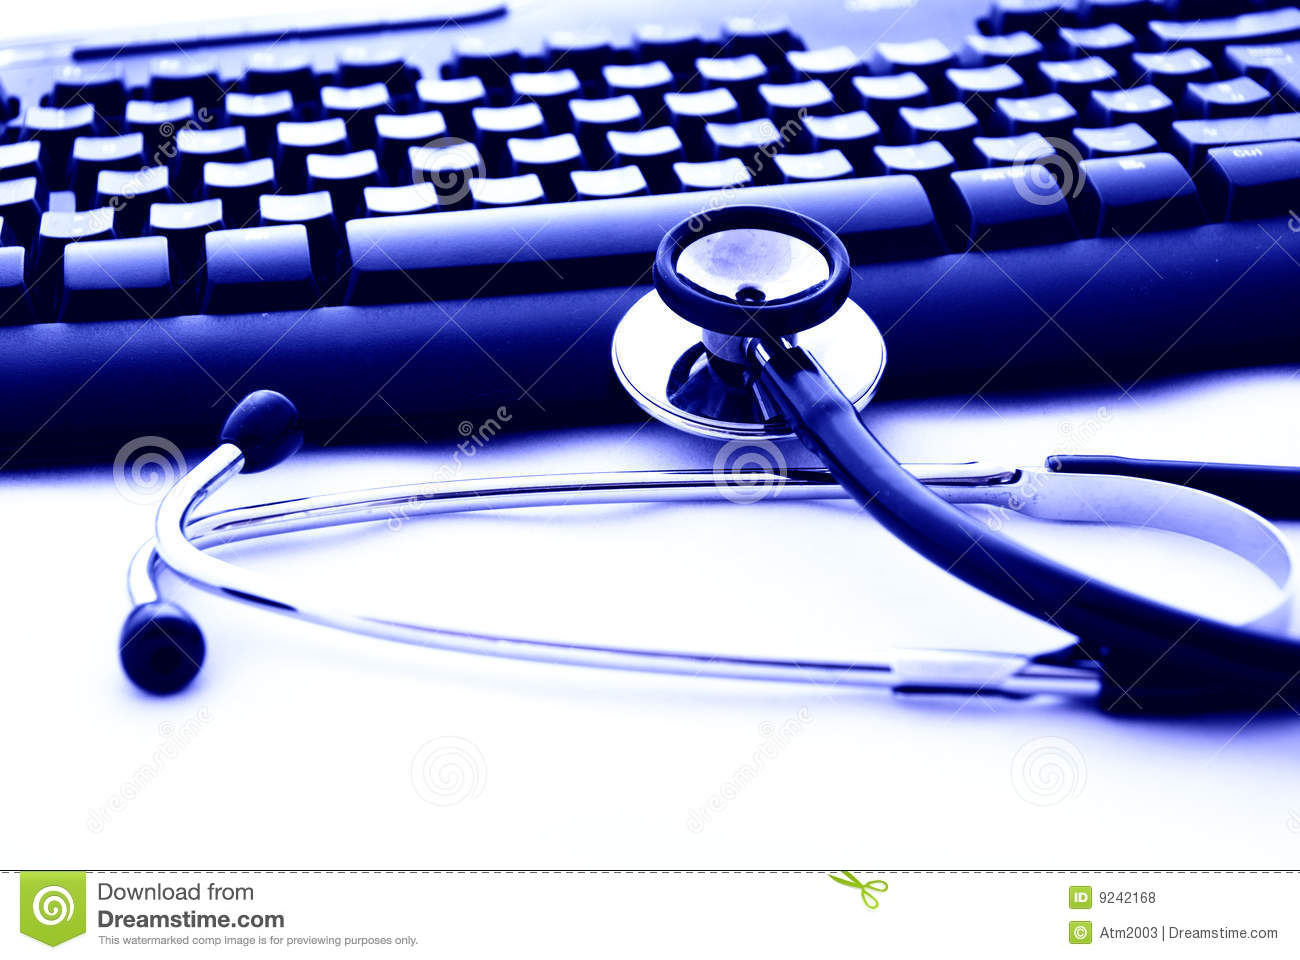 A Stethoscope And Computer Keyboard Royalty Free Stock Photos  Image 9242168